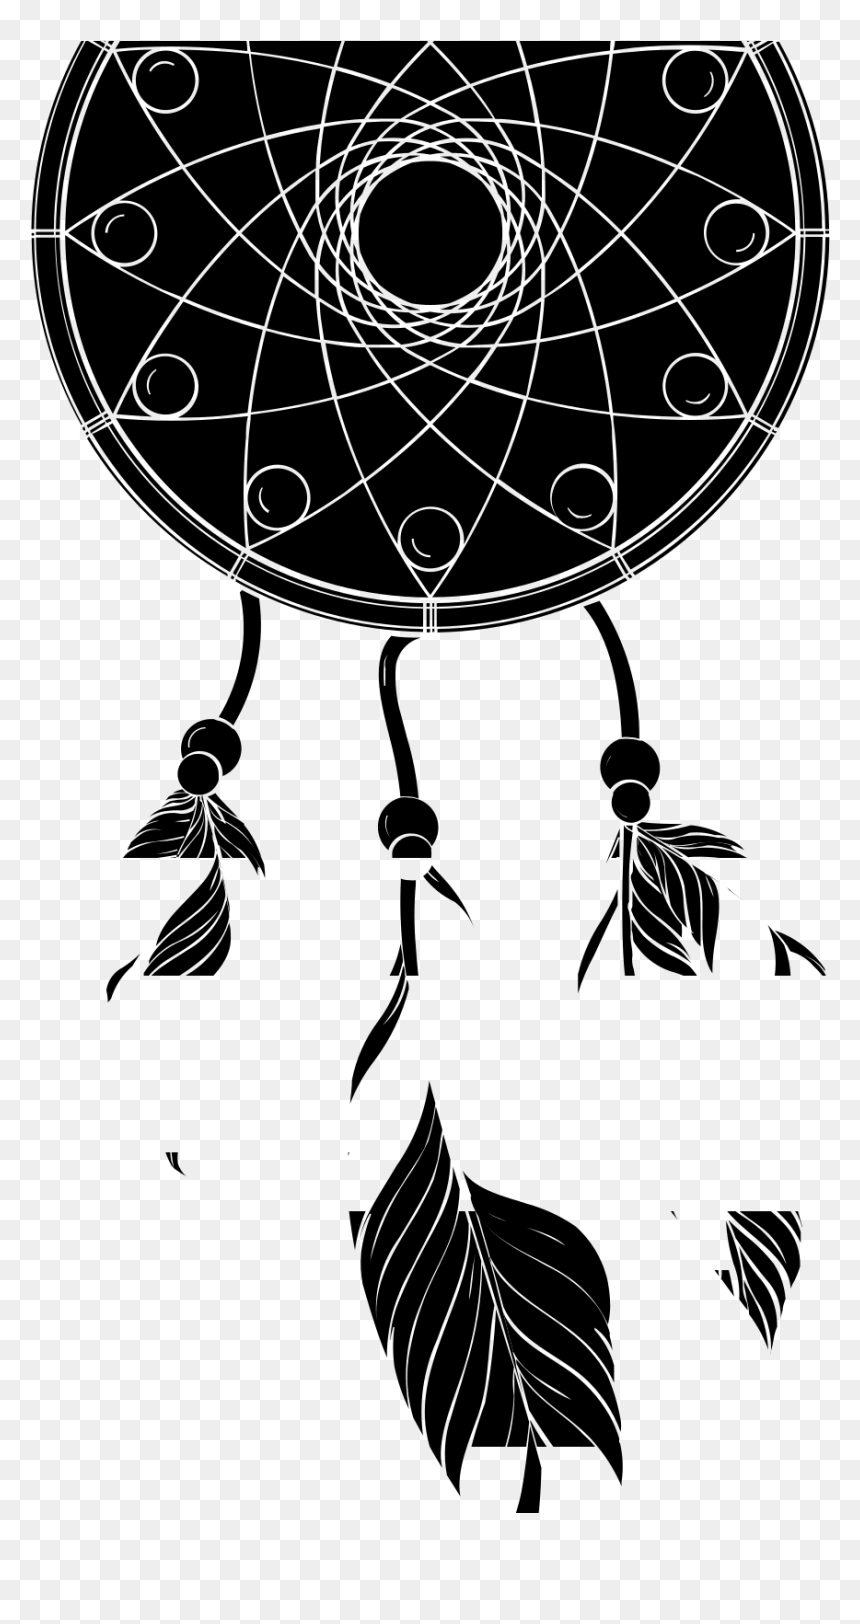 Dreamcatchers - Coloring Pages for Adults   1624x860